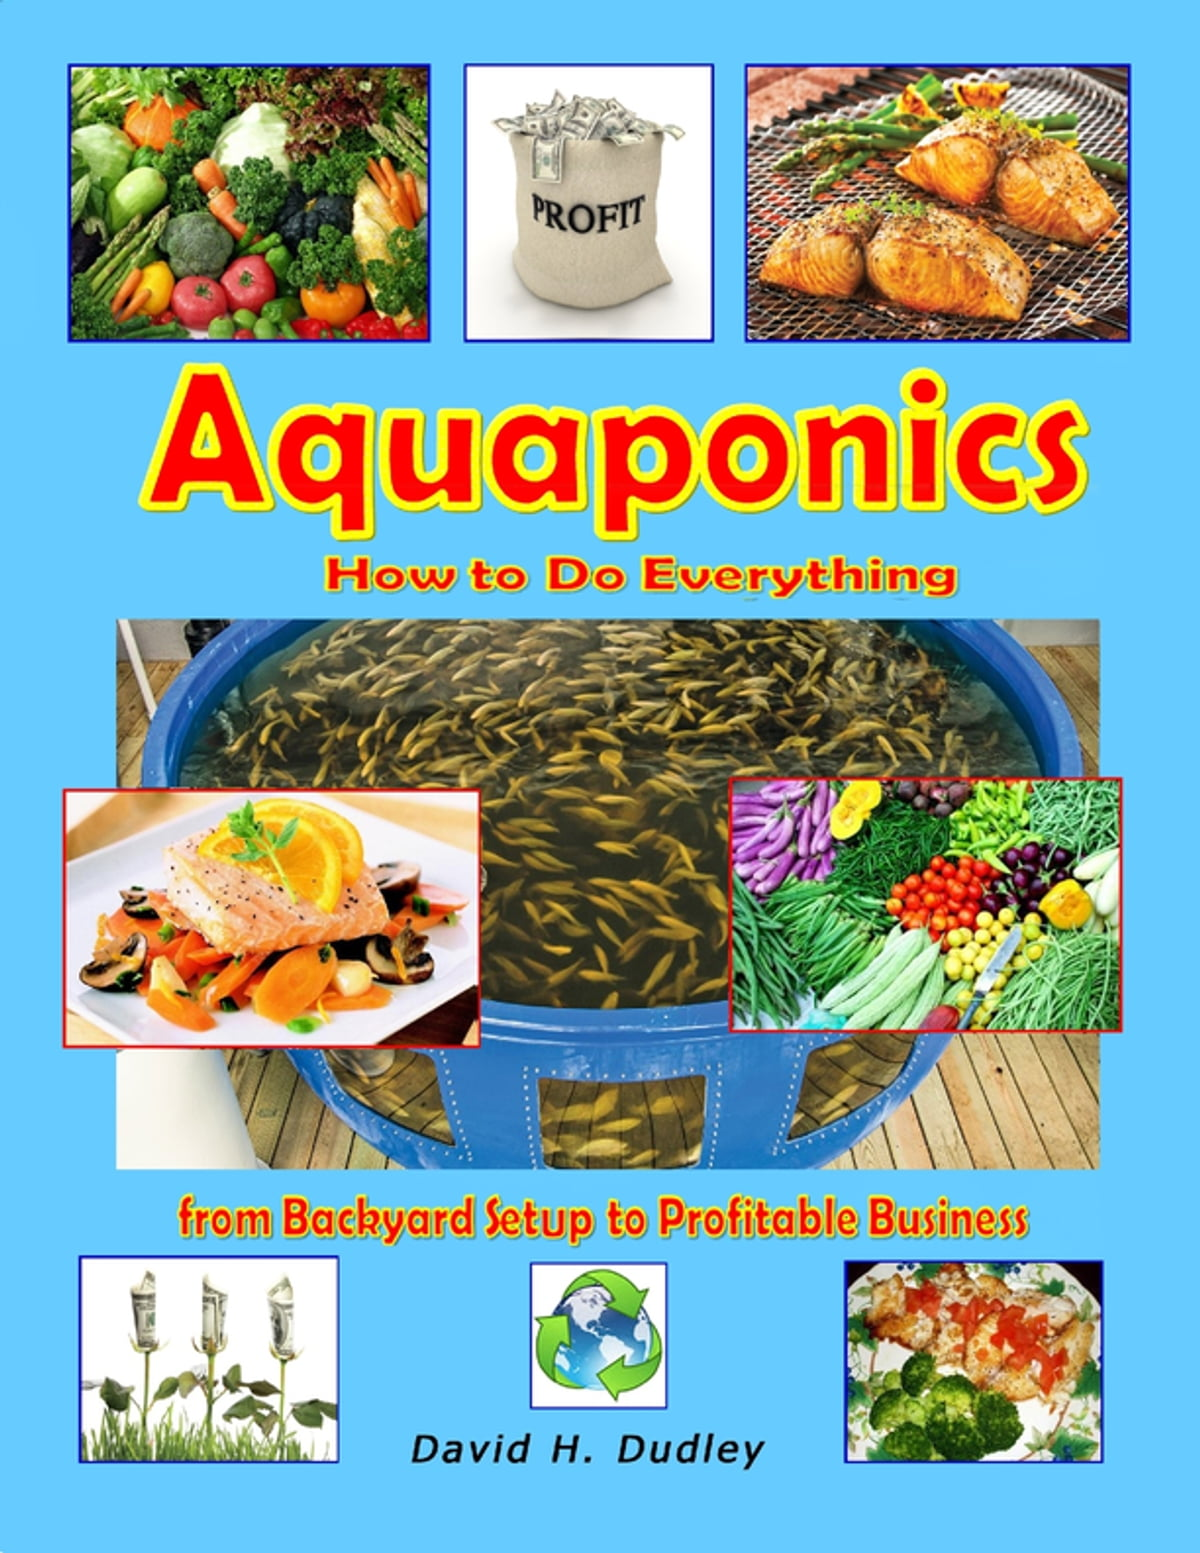 aquaponics how to do everything from backyard setup to profitable